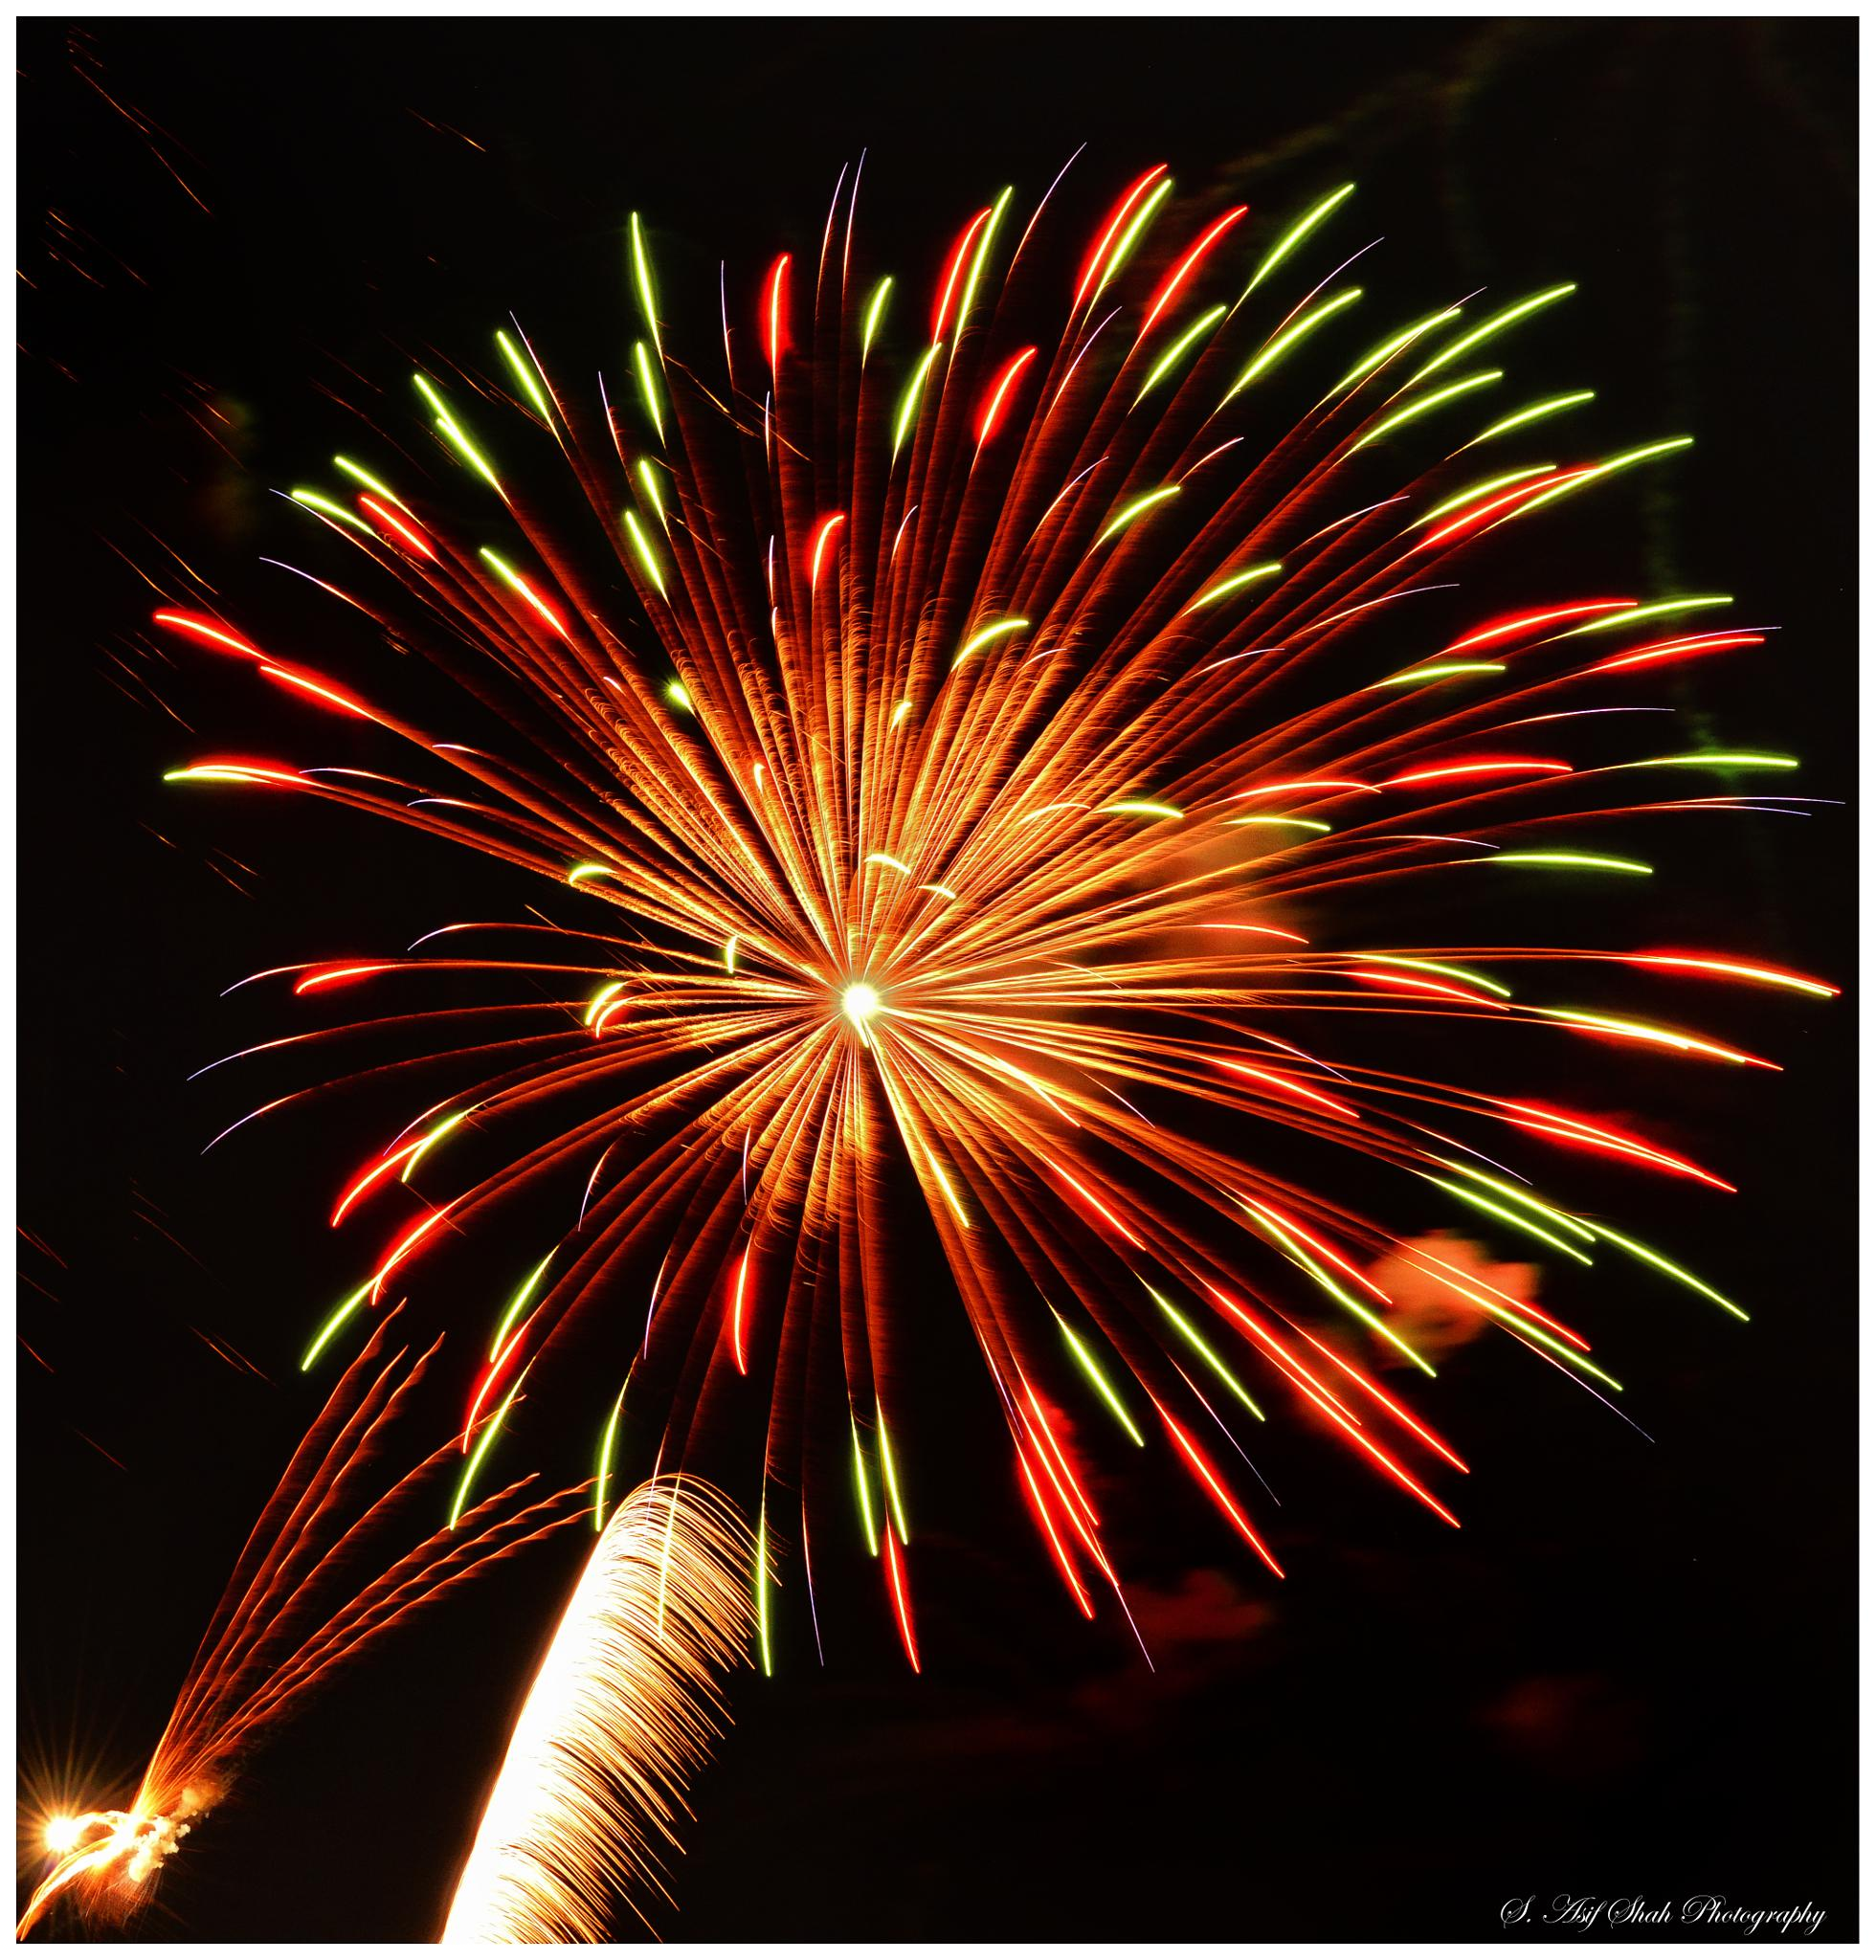 Fireworks by S. Asif Shah photography